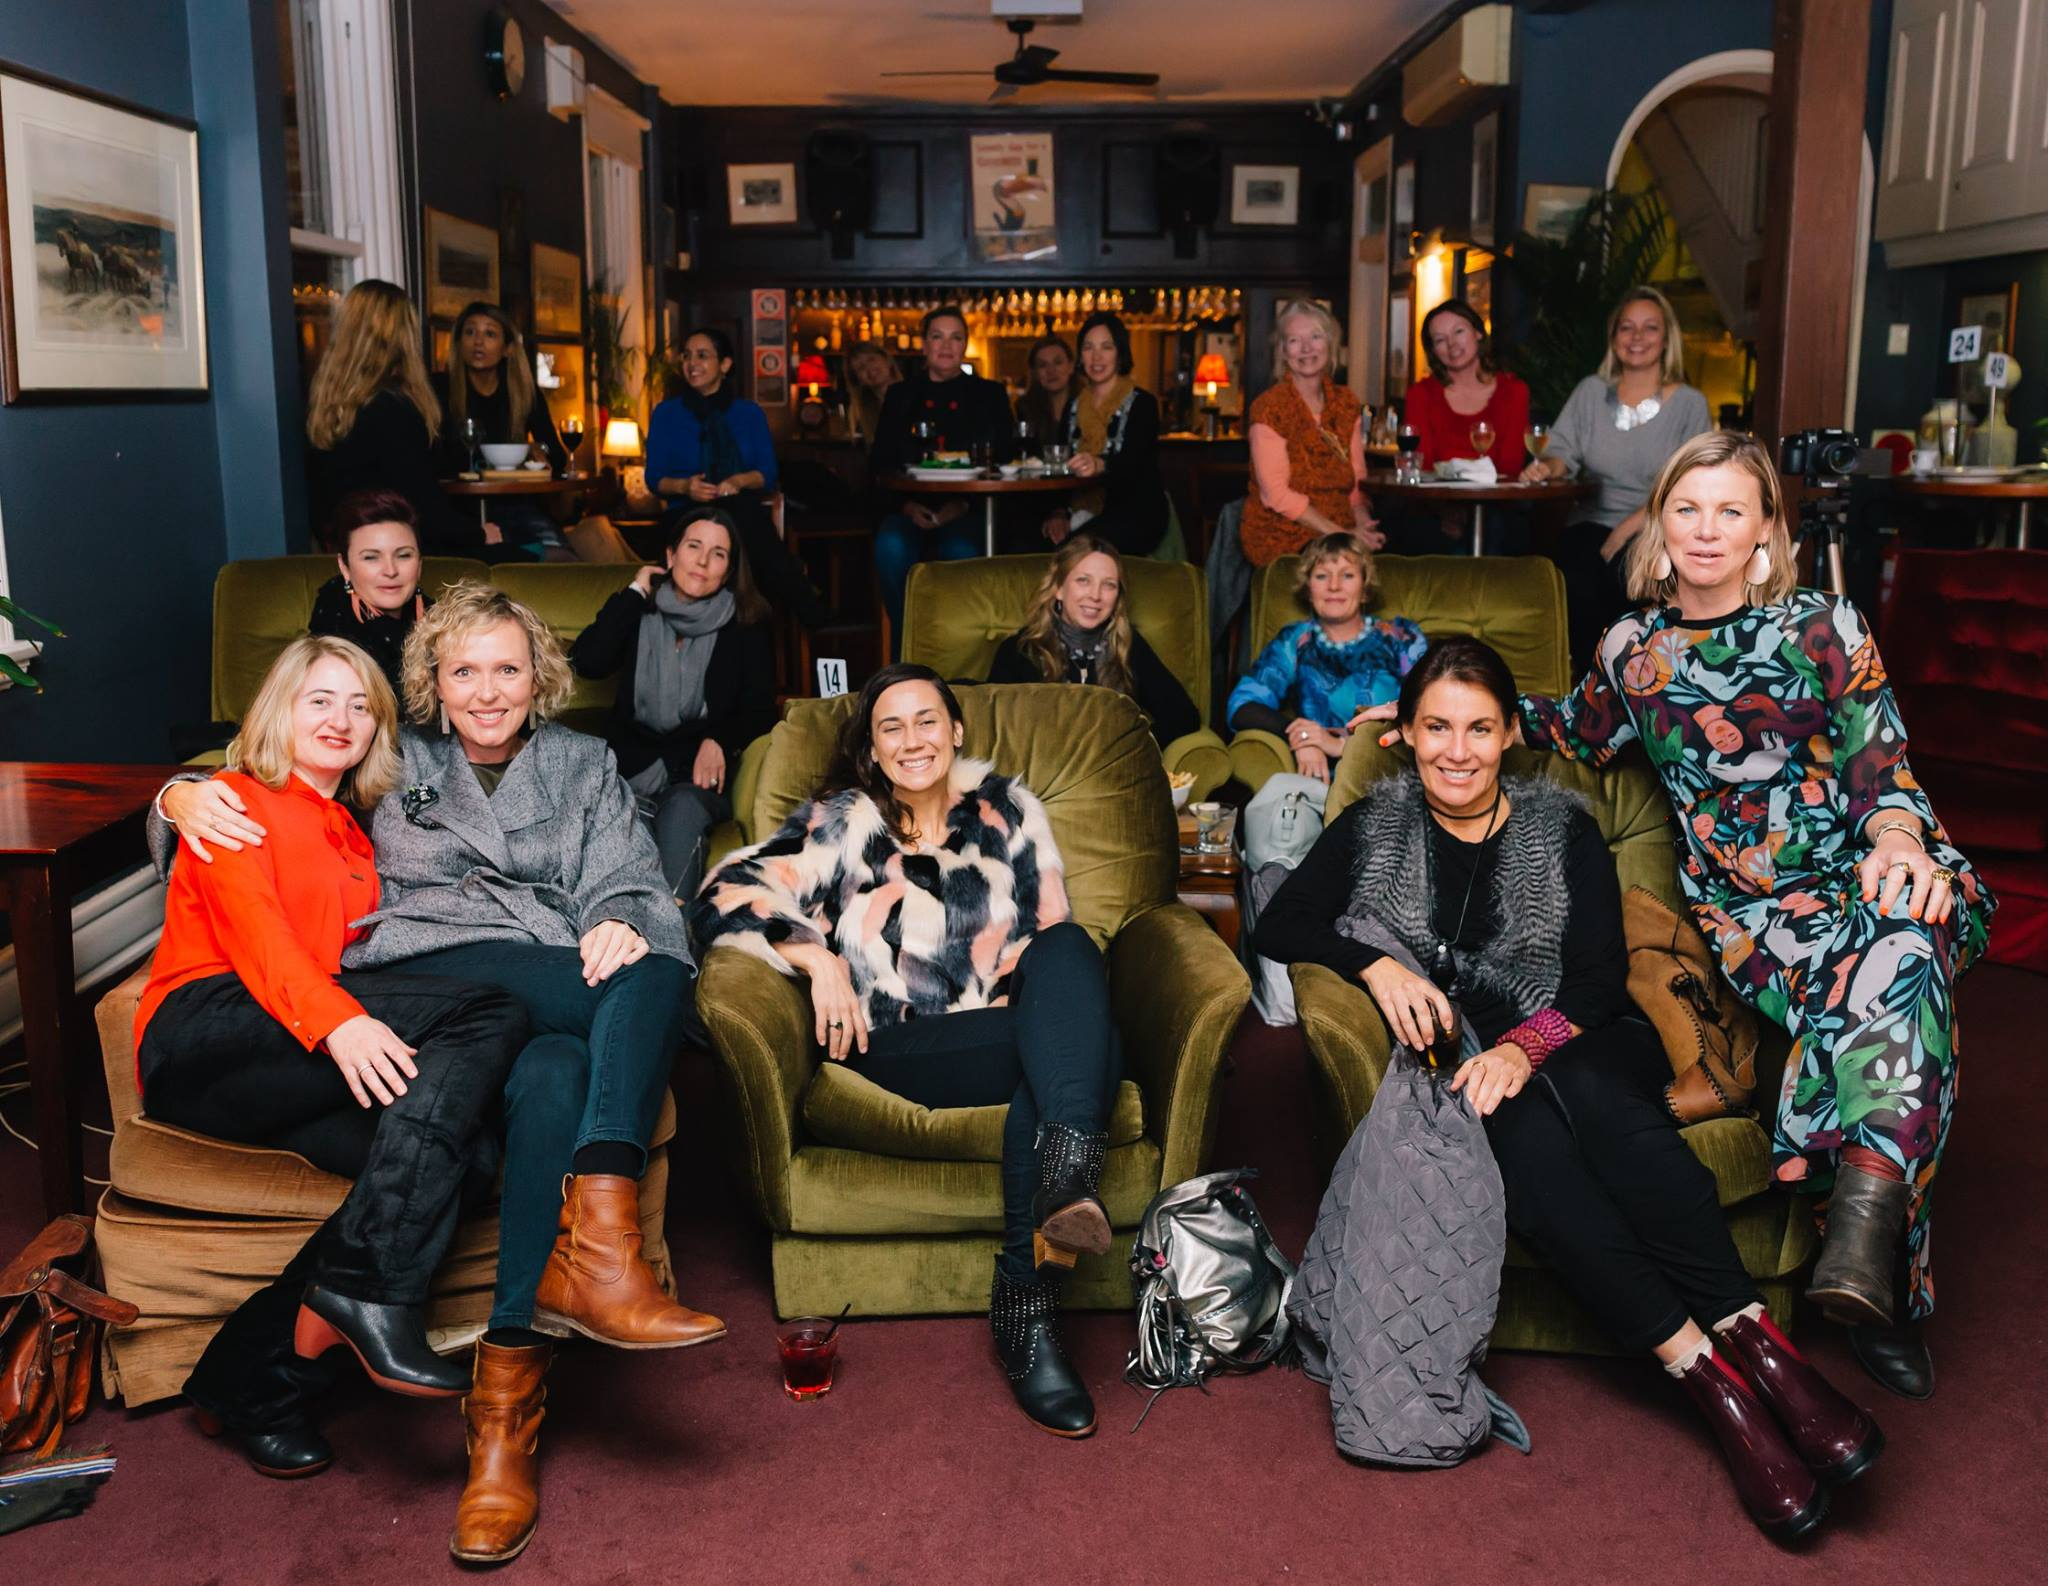 A roomful of creative mamas enjoyed an inspiring and cosy winter night out listening to our fabulous featured mama presenter artist Jasmine Mansbridge, discussing 'The Power of Creativity During Times of Adversity'